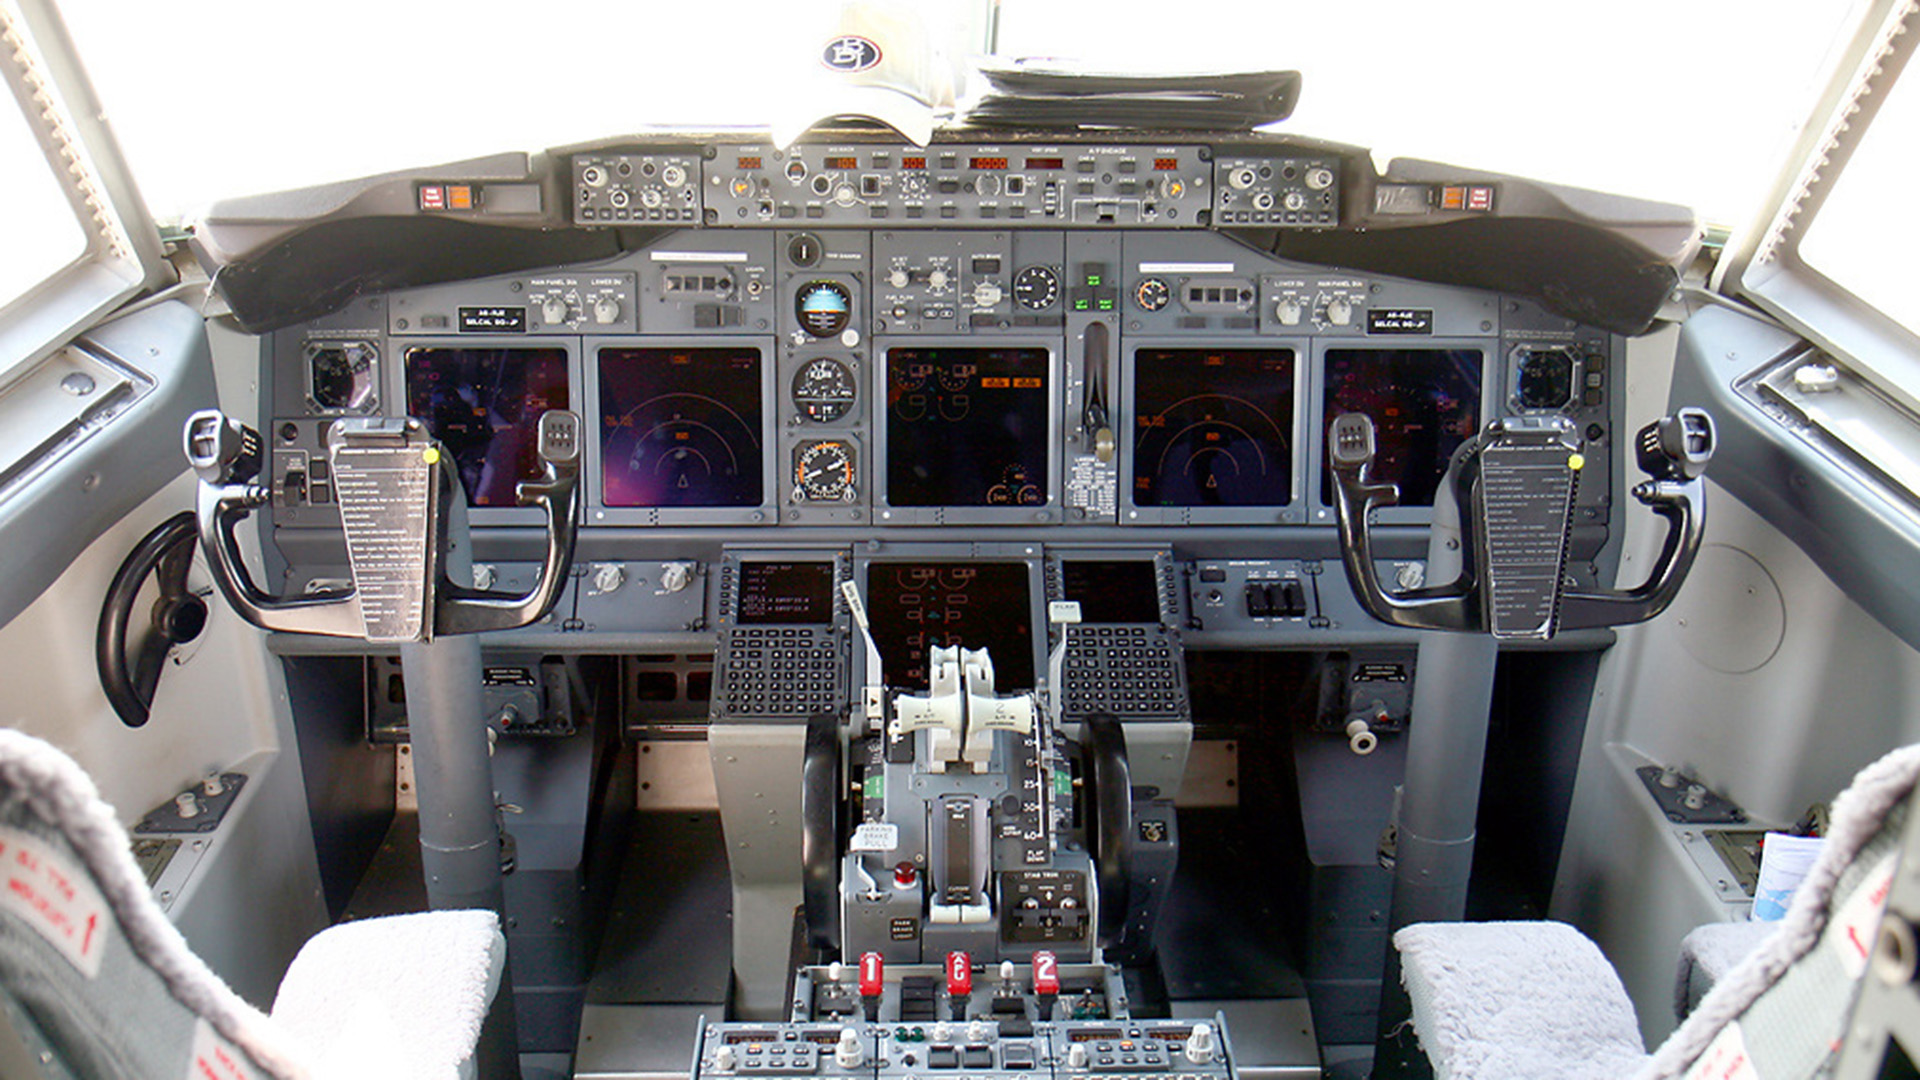 A cockpit with avionics systems